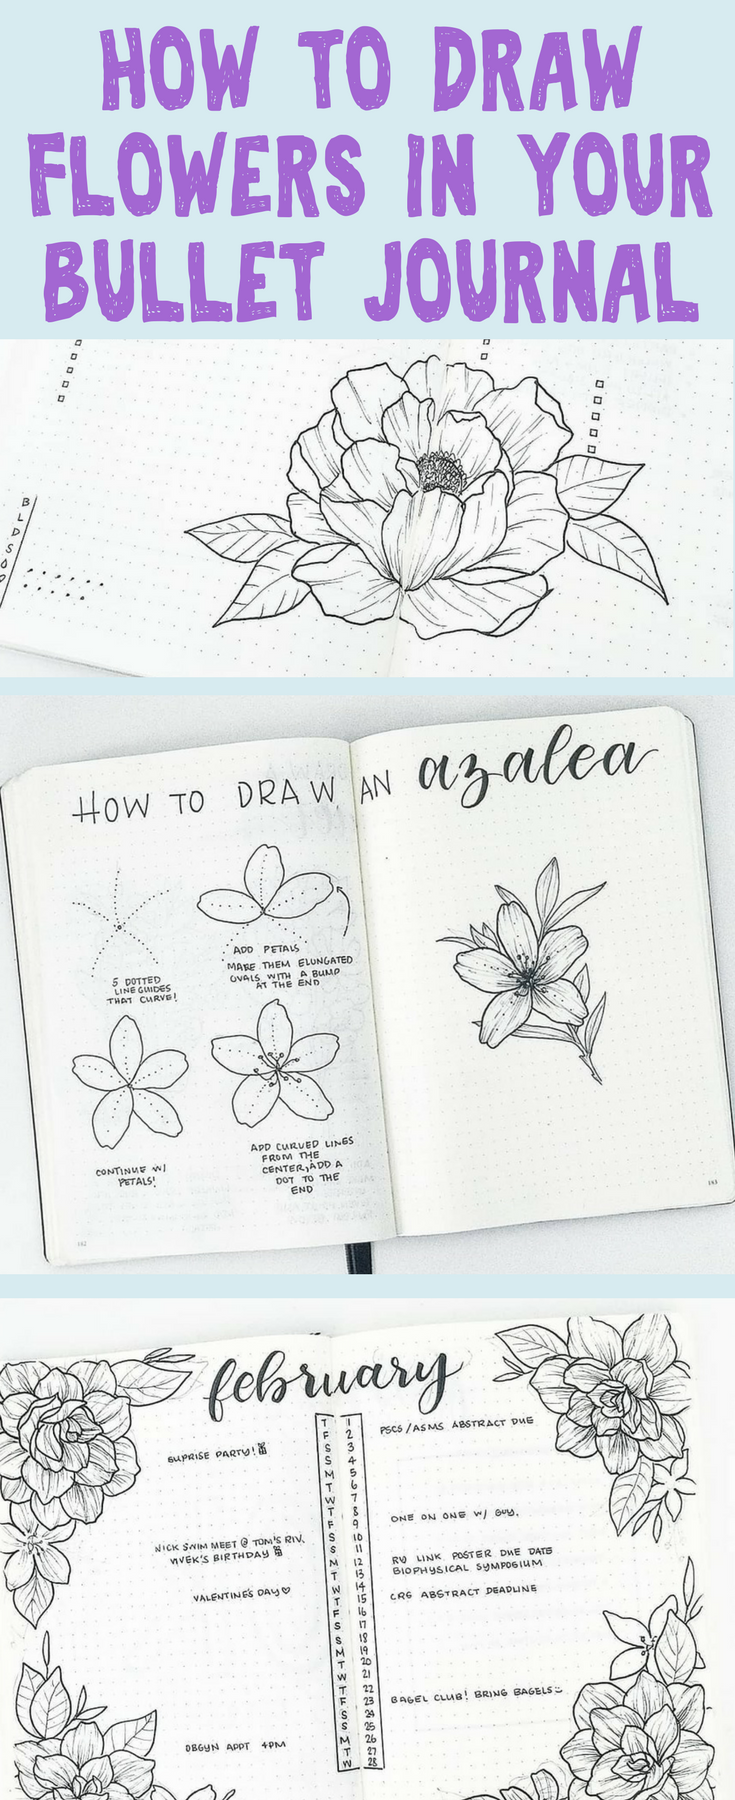 Planner Doodles Galore Get Tons Of Ideas On How To Draw The Most Stunning Flower Doodles To Decorate Your Planners And Bullet Journal Planner Doodles Journal